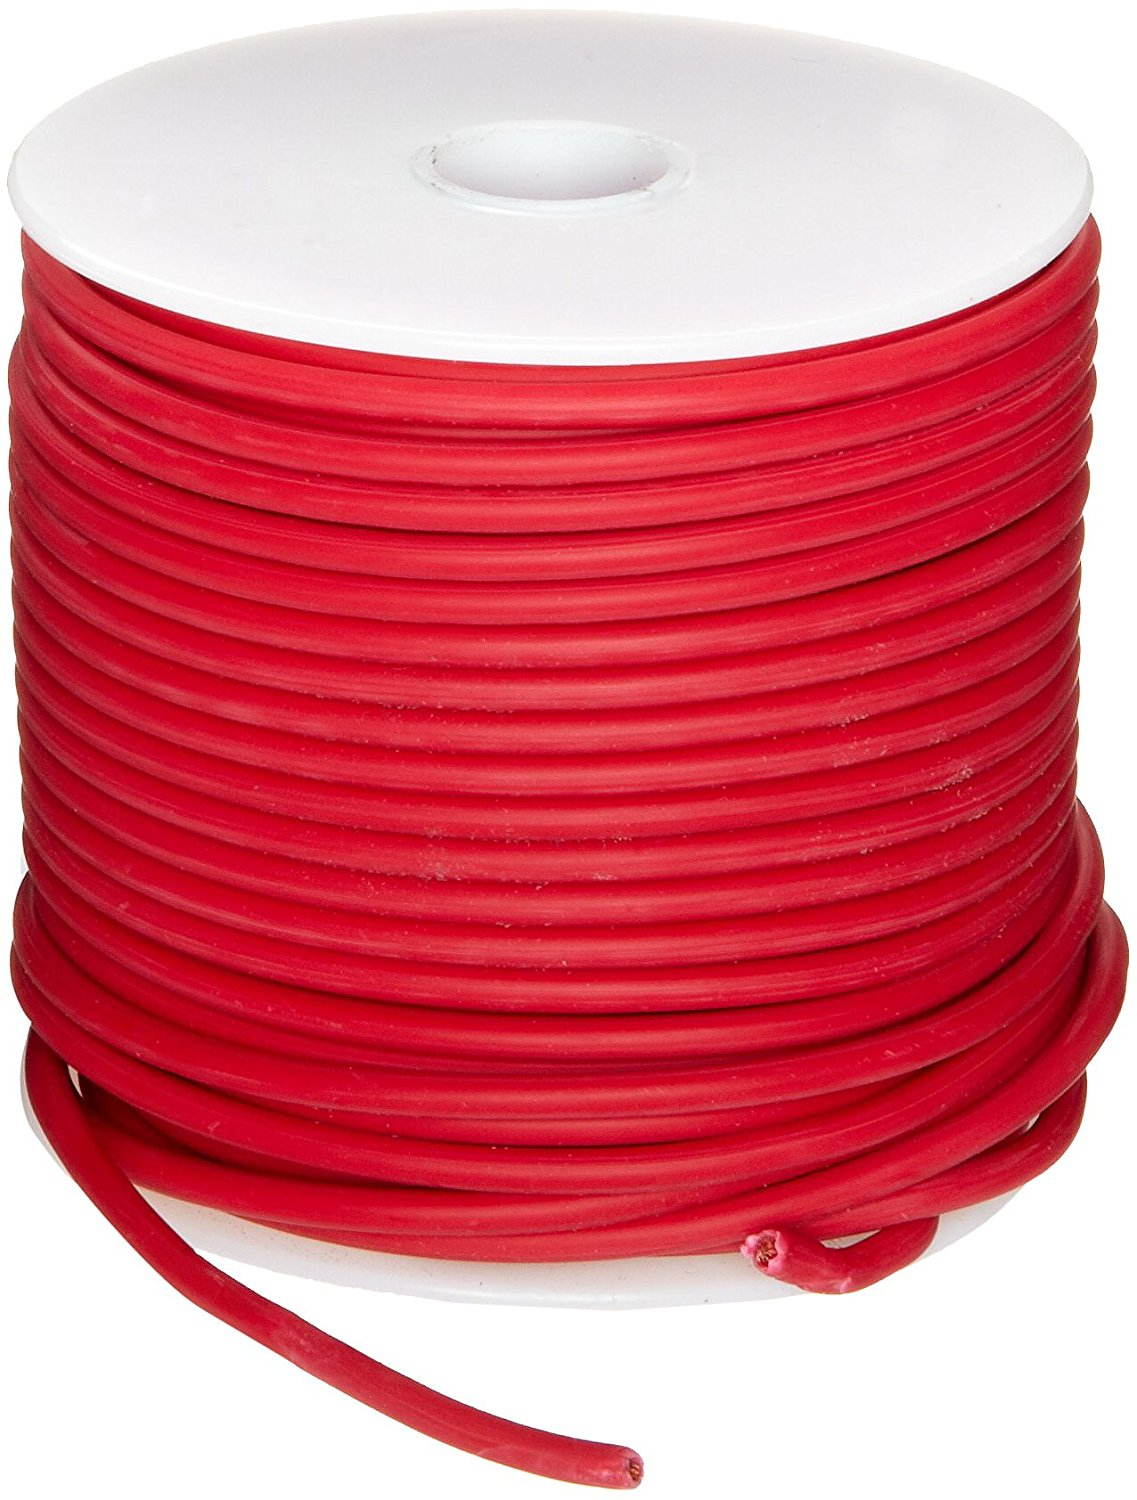 GXL Automotive Copper Wire, Red, 16 AWG, 0.0508\